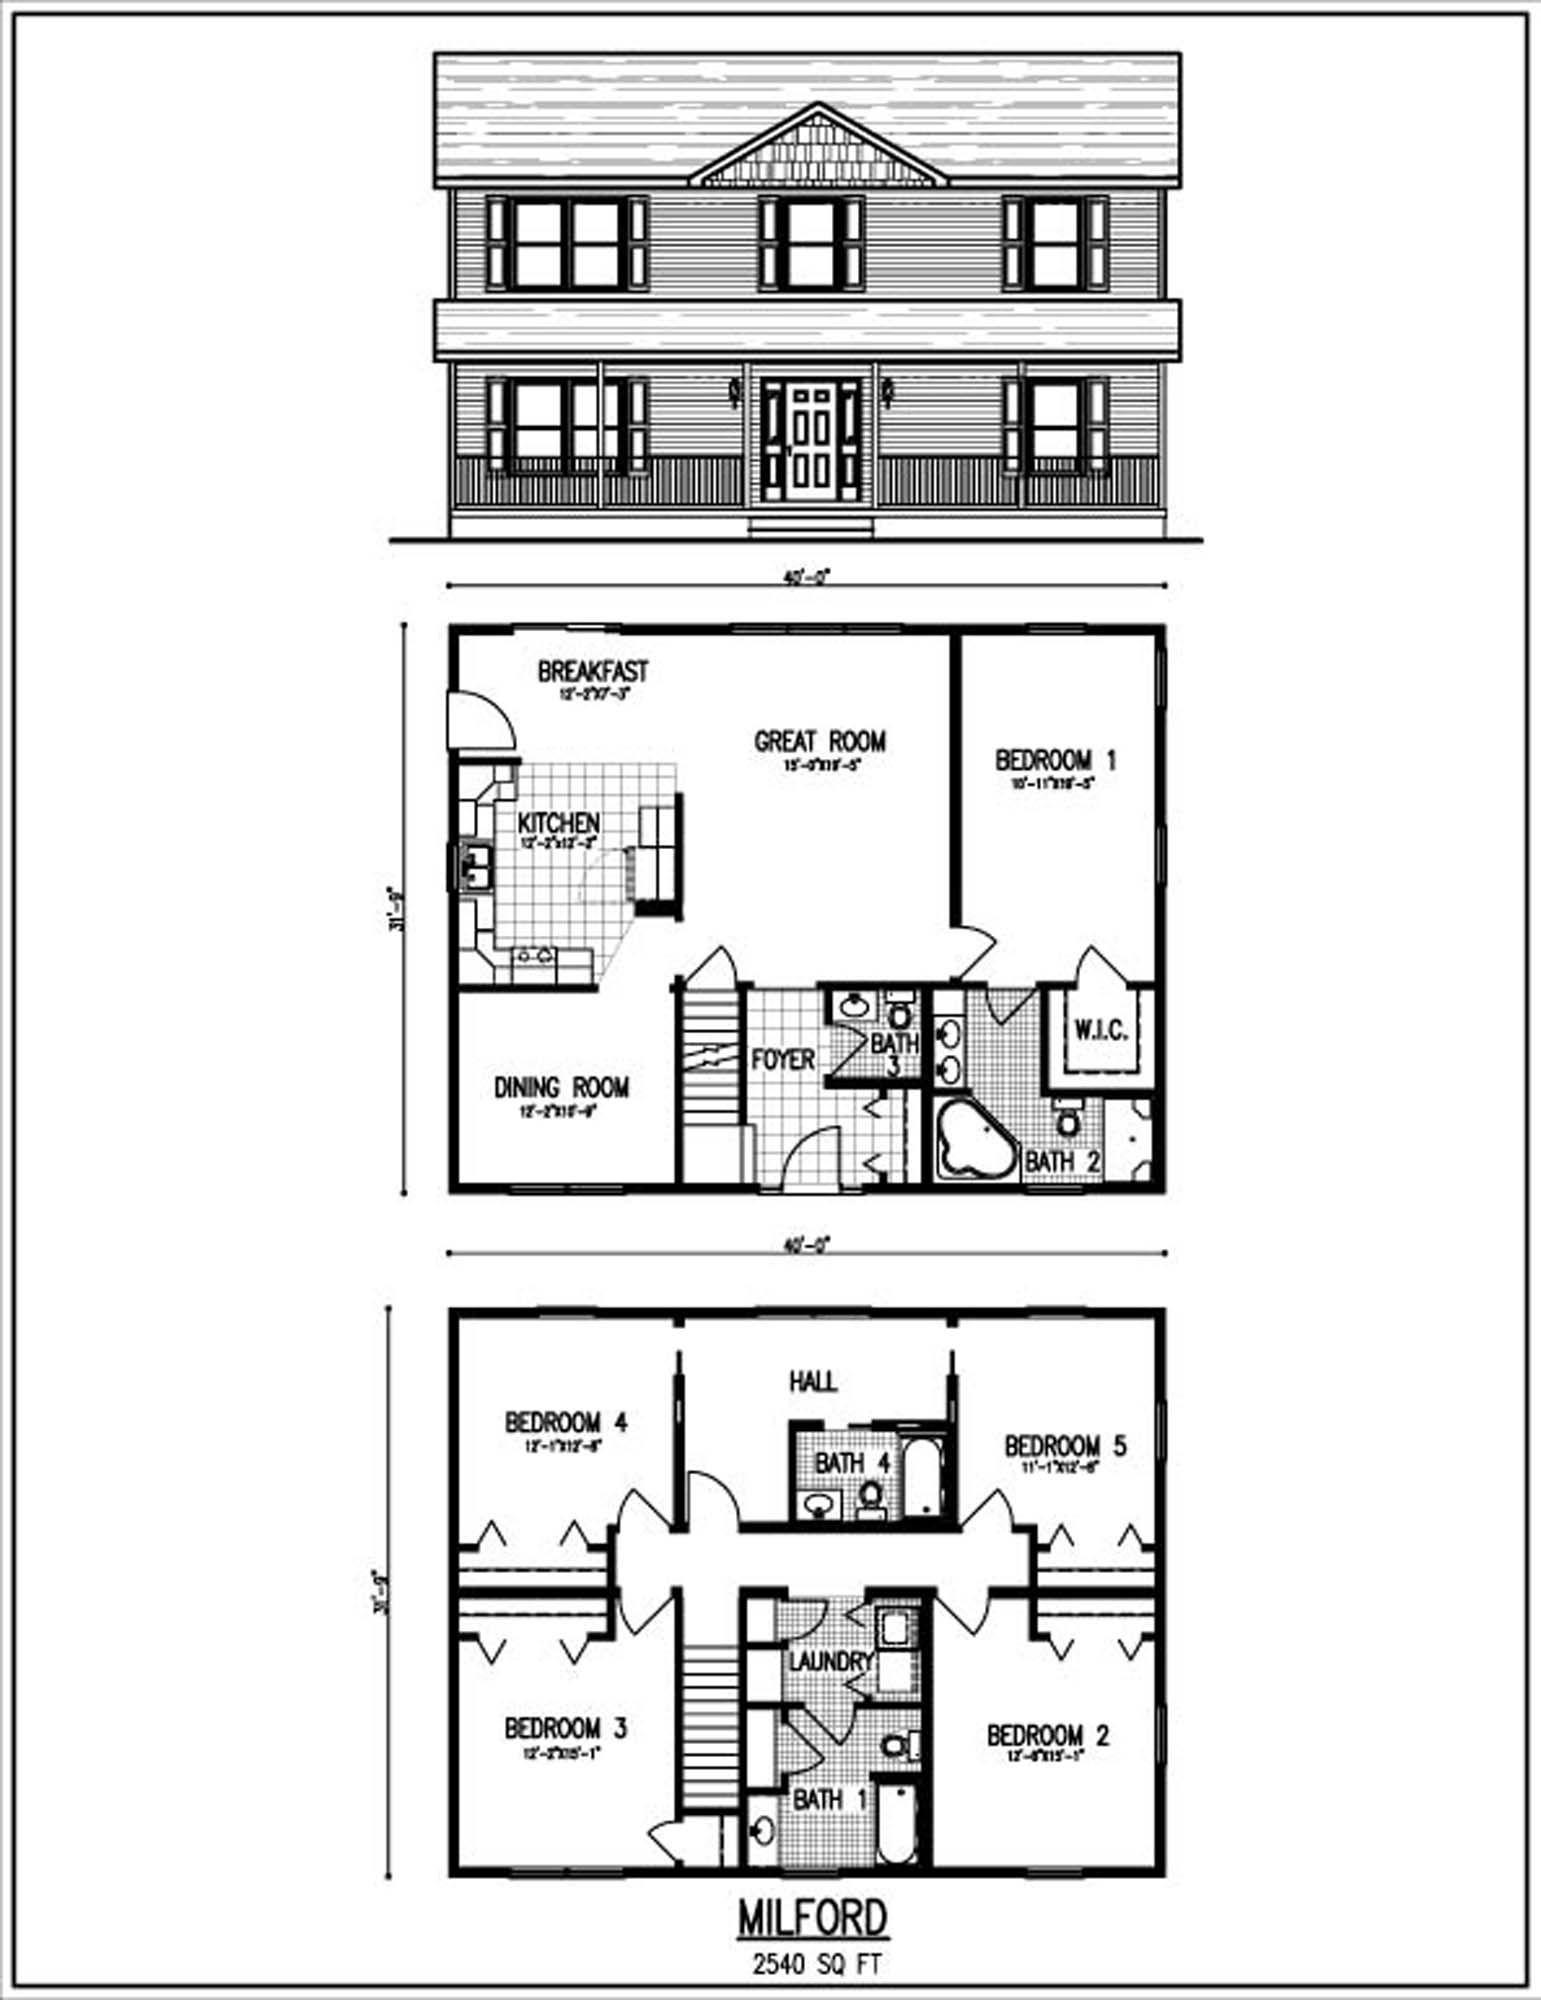 Beautiful 2 story house plans with upper level floor plan Two story farmhouse plans